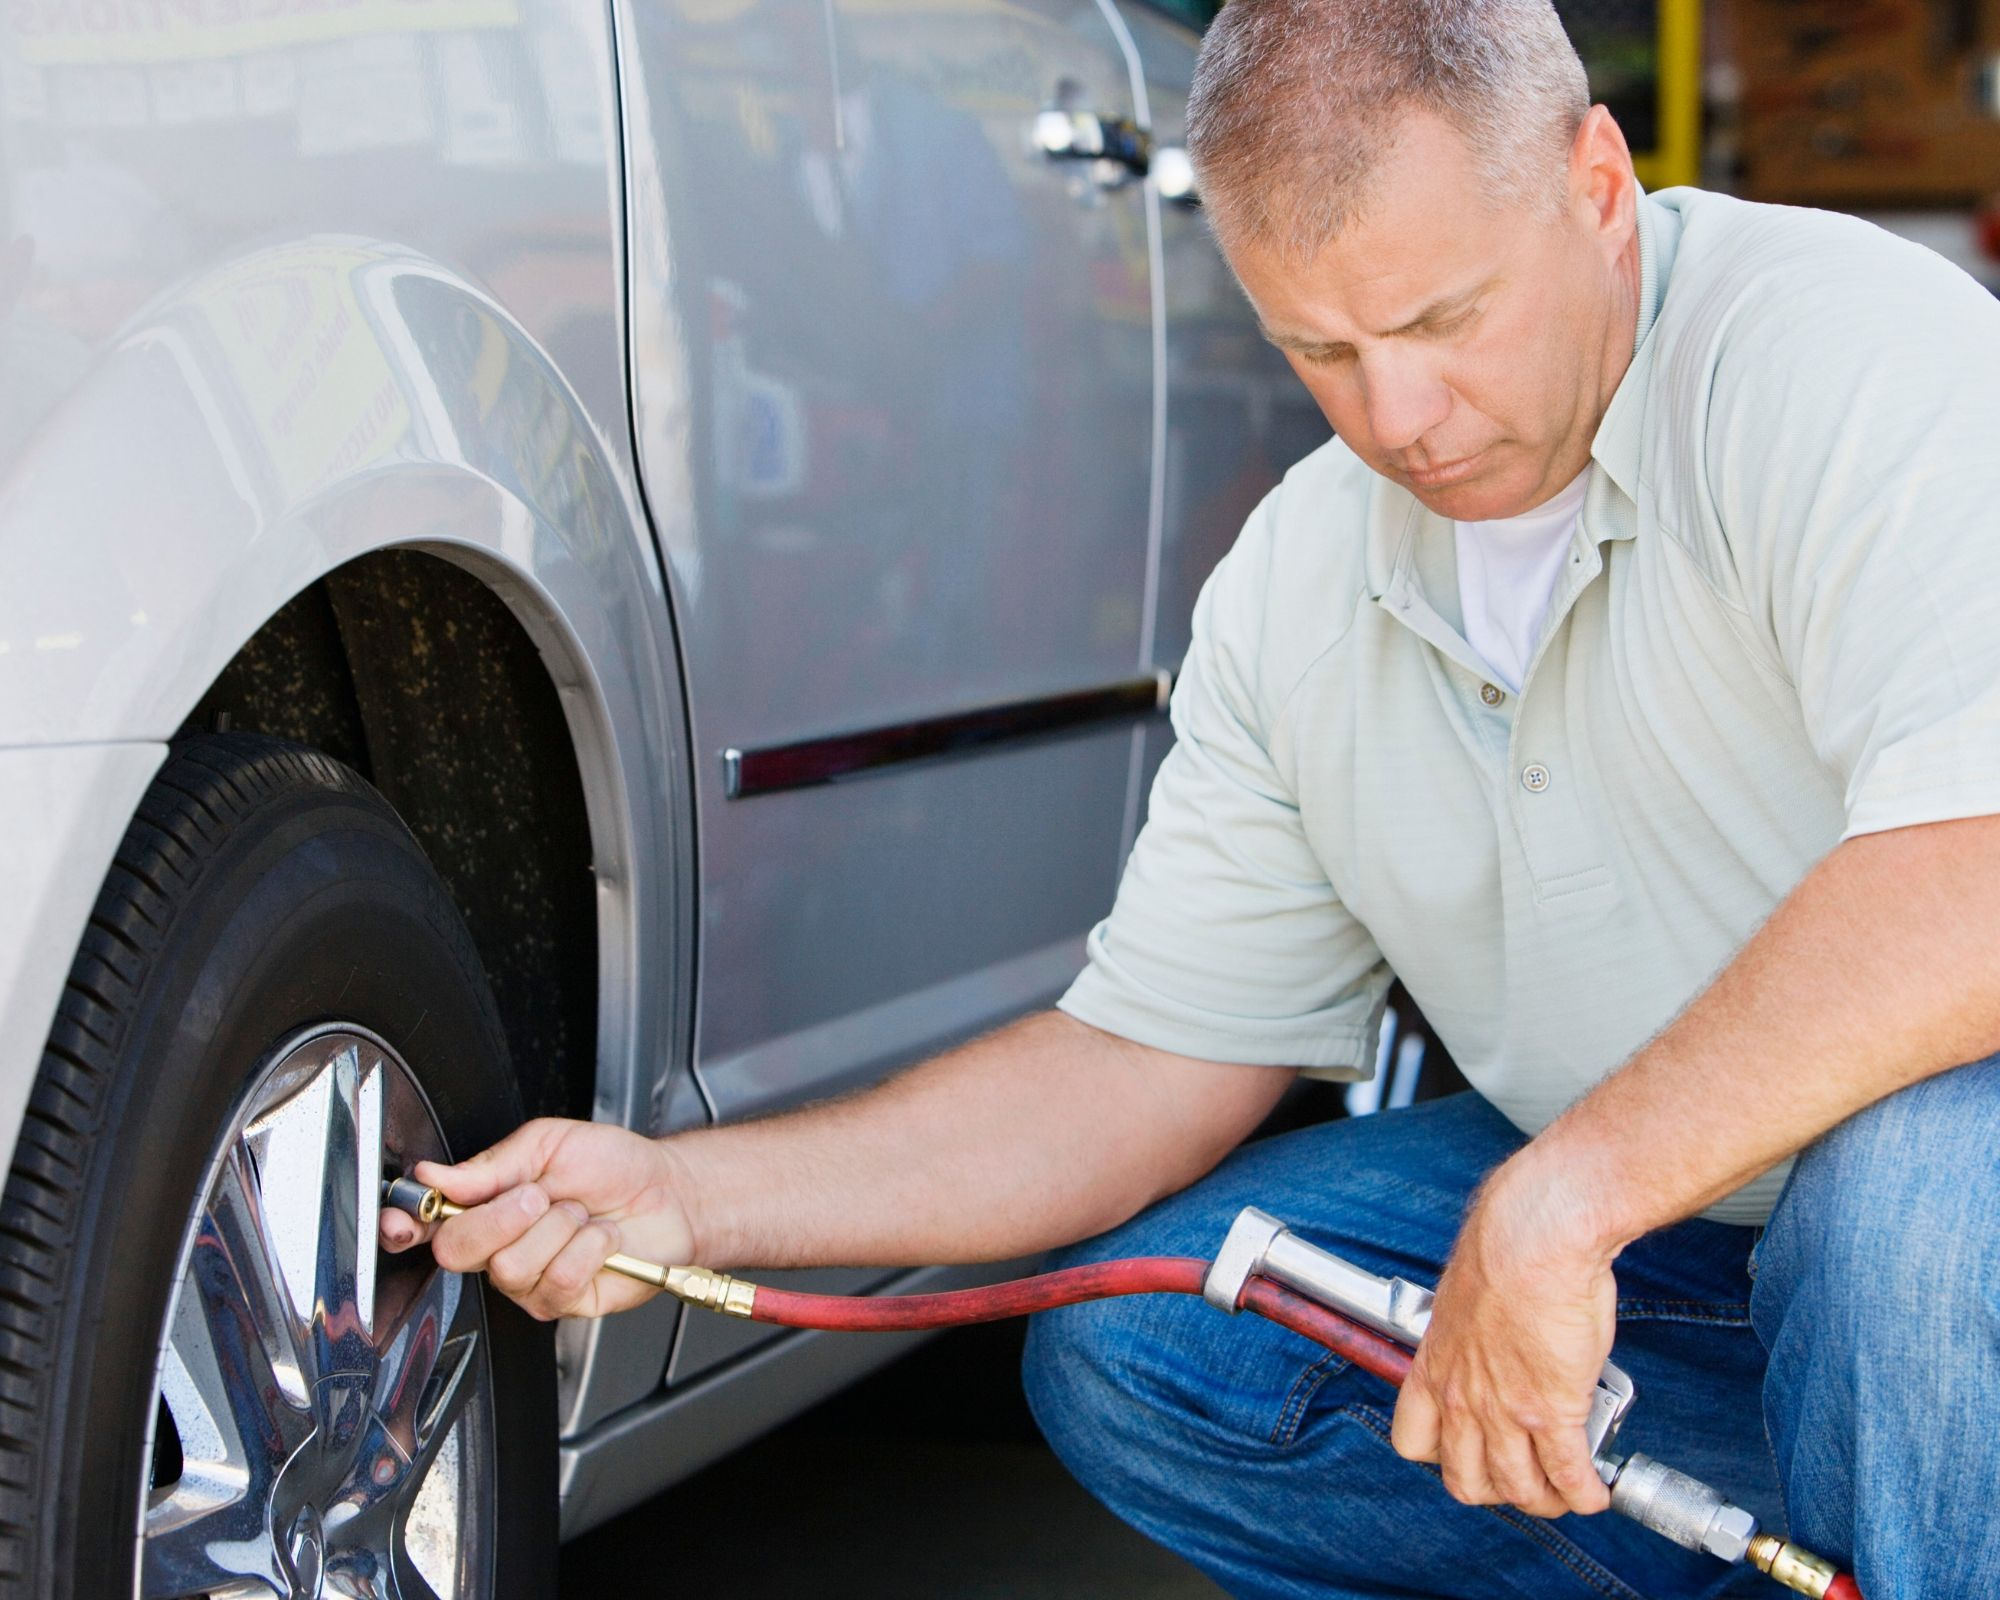 A squatting man pumps up the tire to a silver vehicle.